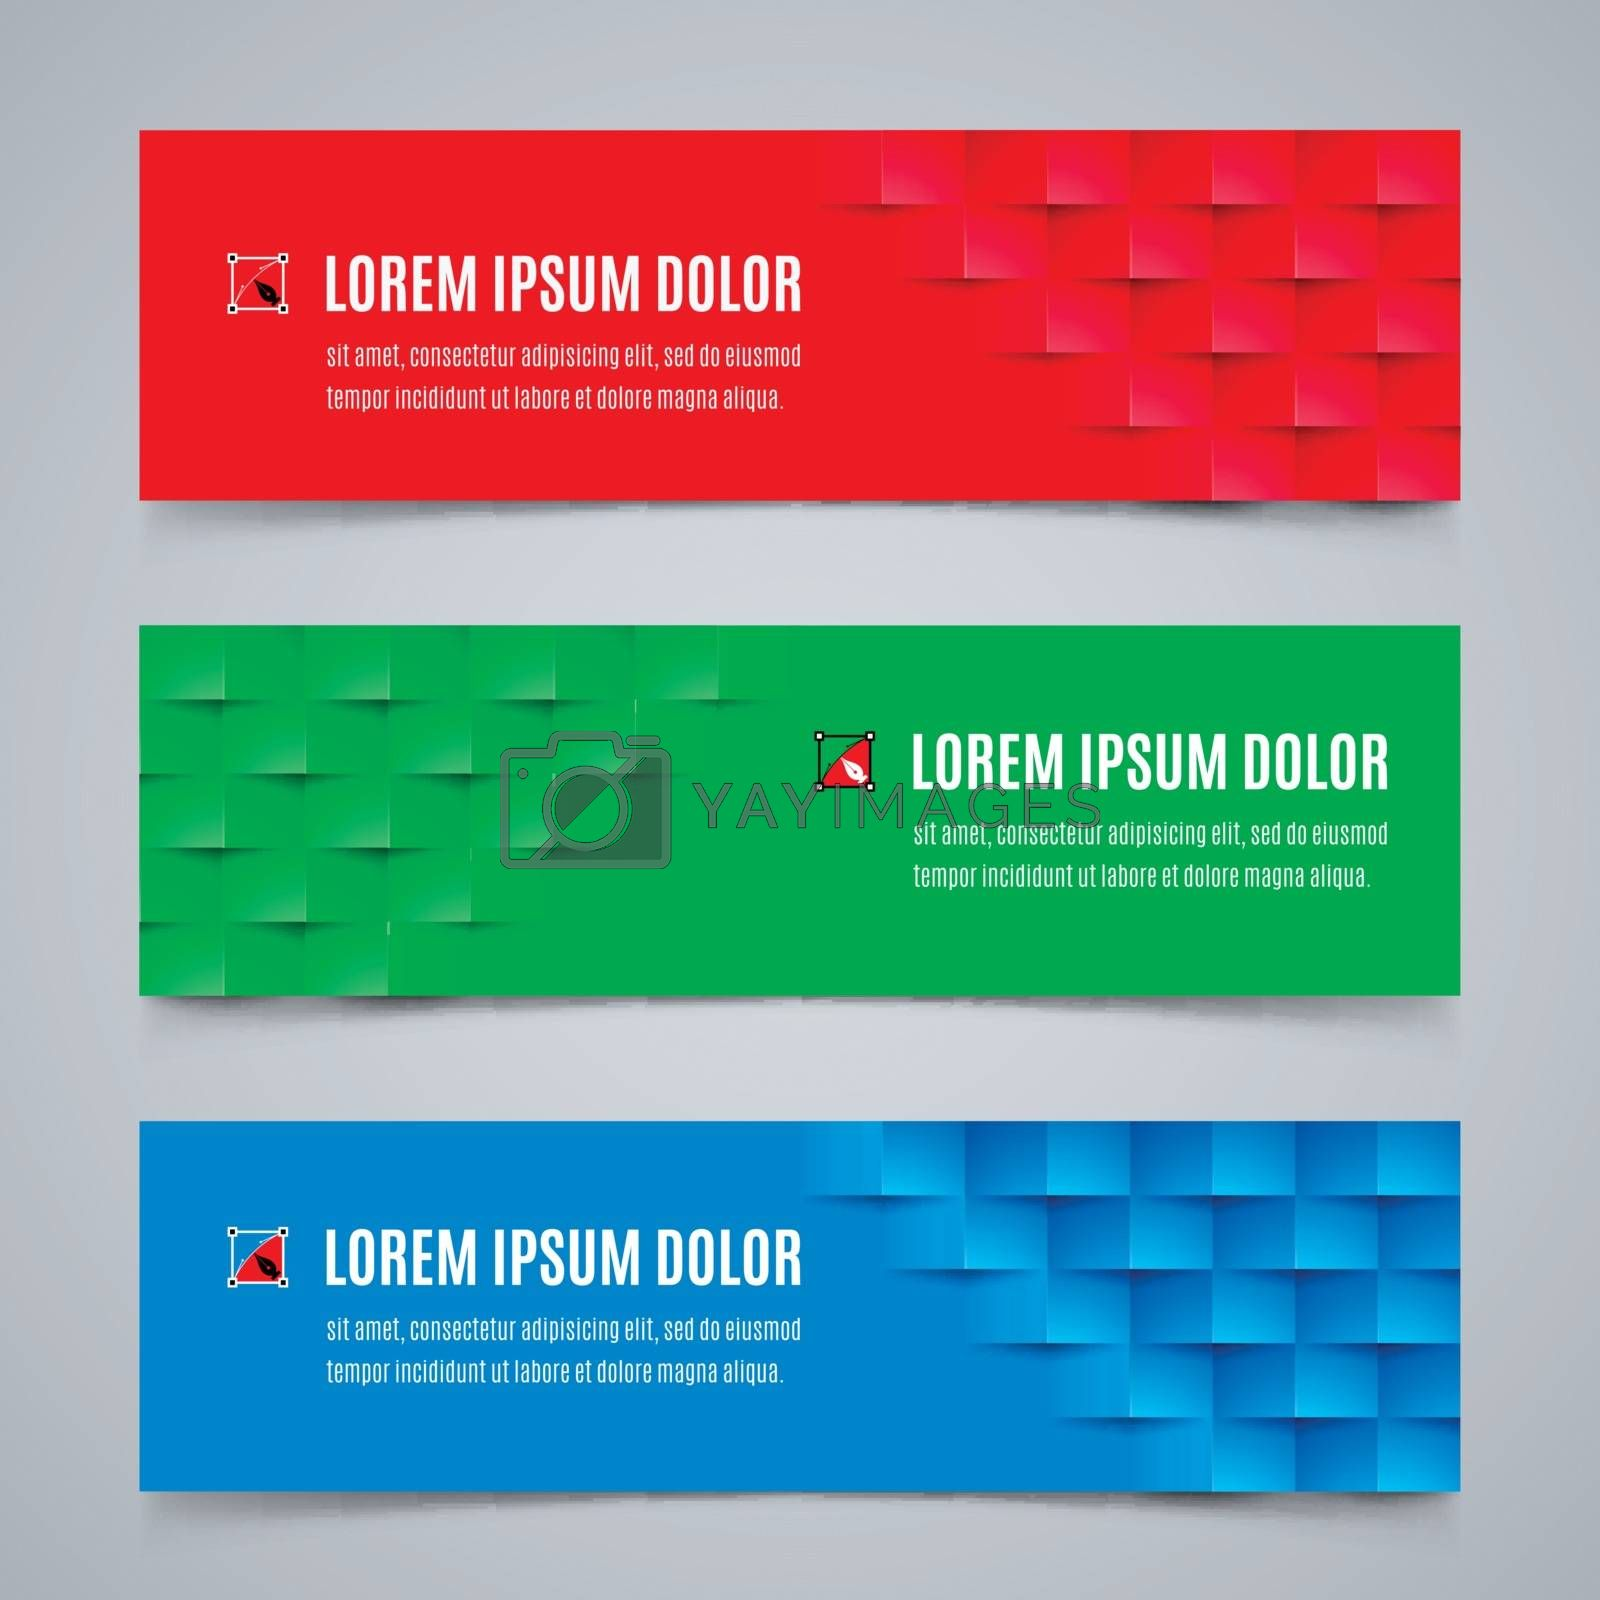 Set of Modern Design Banners Template with Abstract Geometric Pattern in Red, Blue and Green Colors